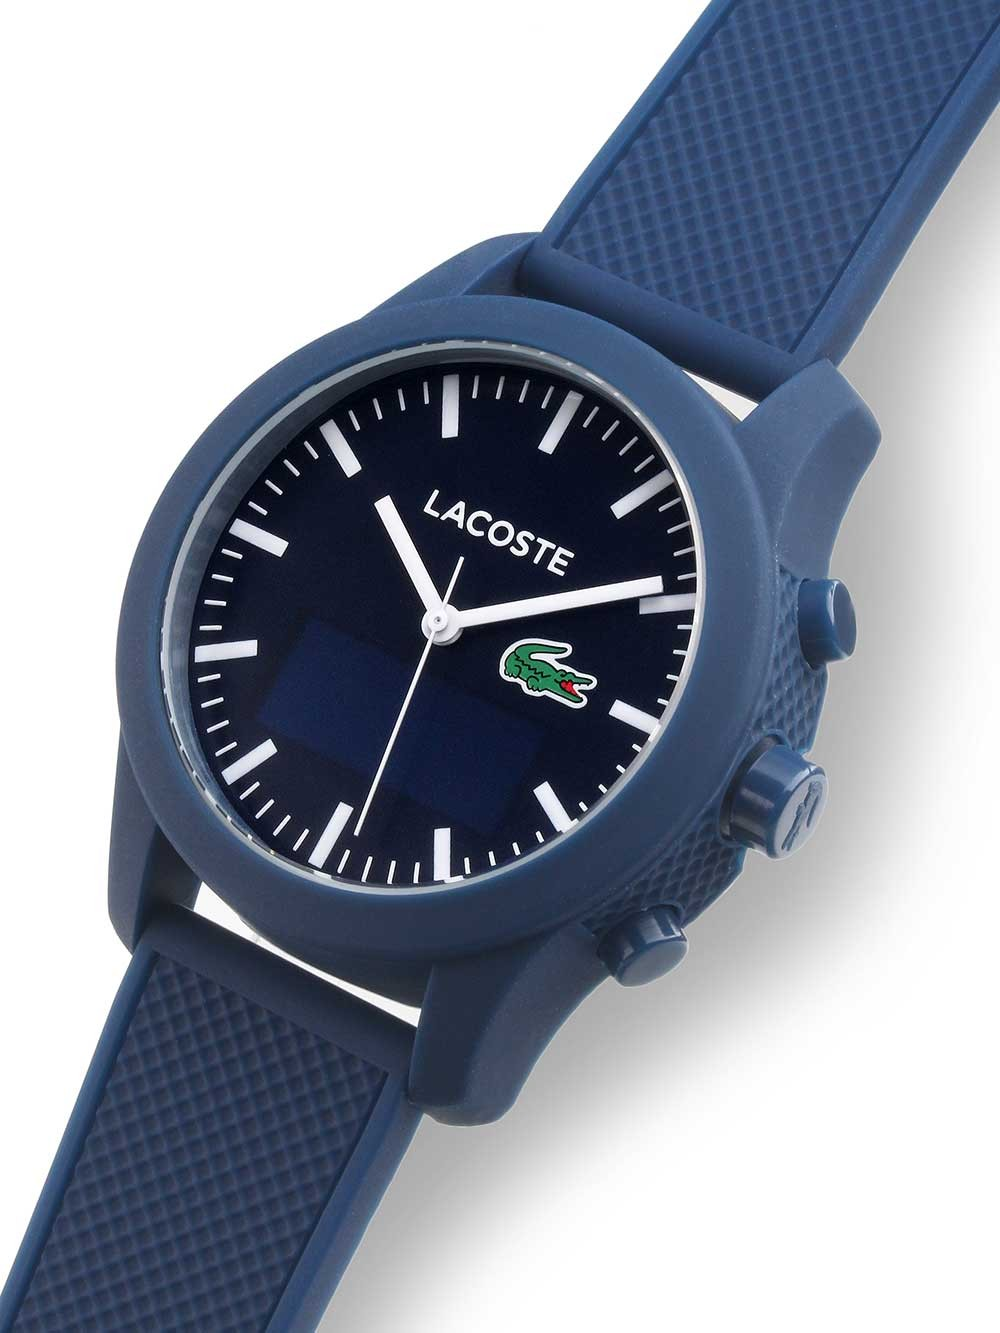 Watches | Chrono12 - Lacoste 2010882 12.12 Smartwatch ...